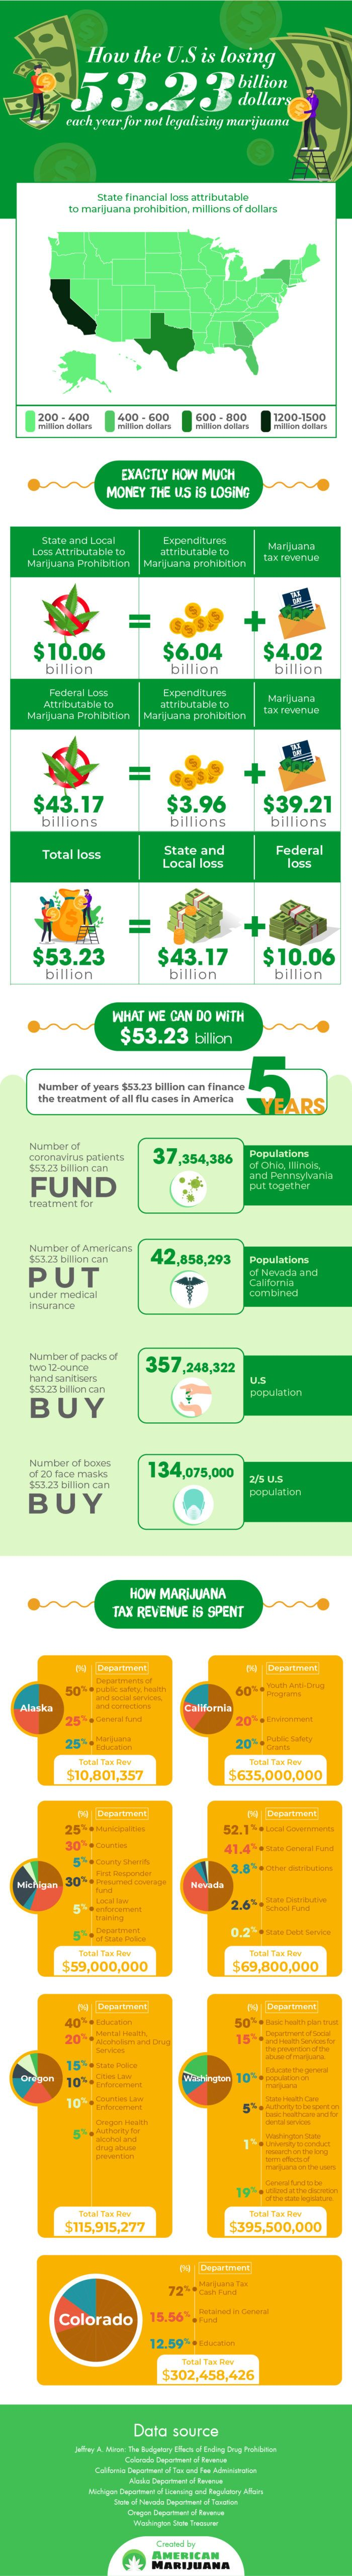 how the us is losing 53 billion for not legalizing marijuana infographic